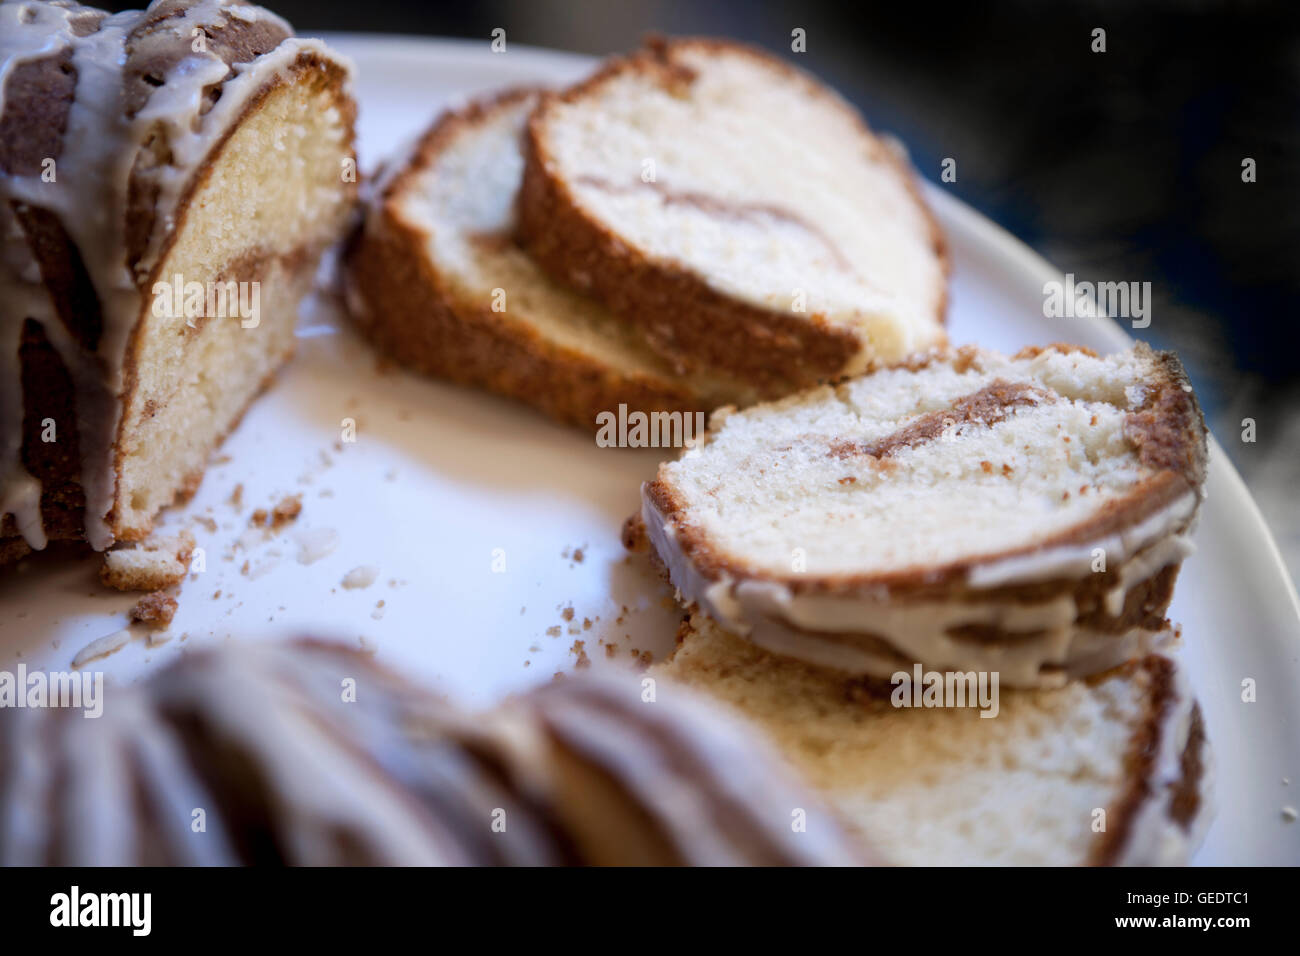 Sliced Sour Cream Coffee Cake with Maple Syrup Glaze - Stock Image